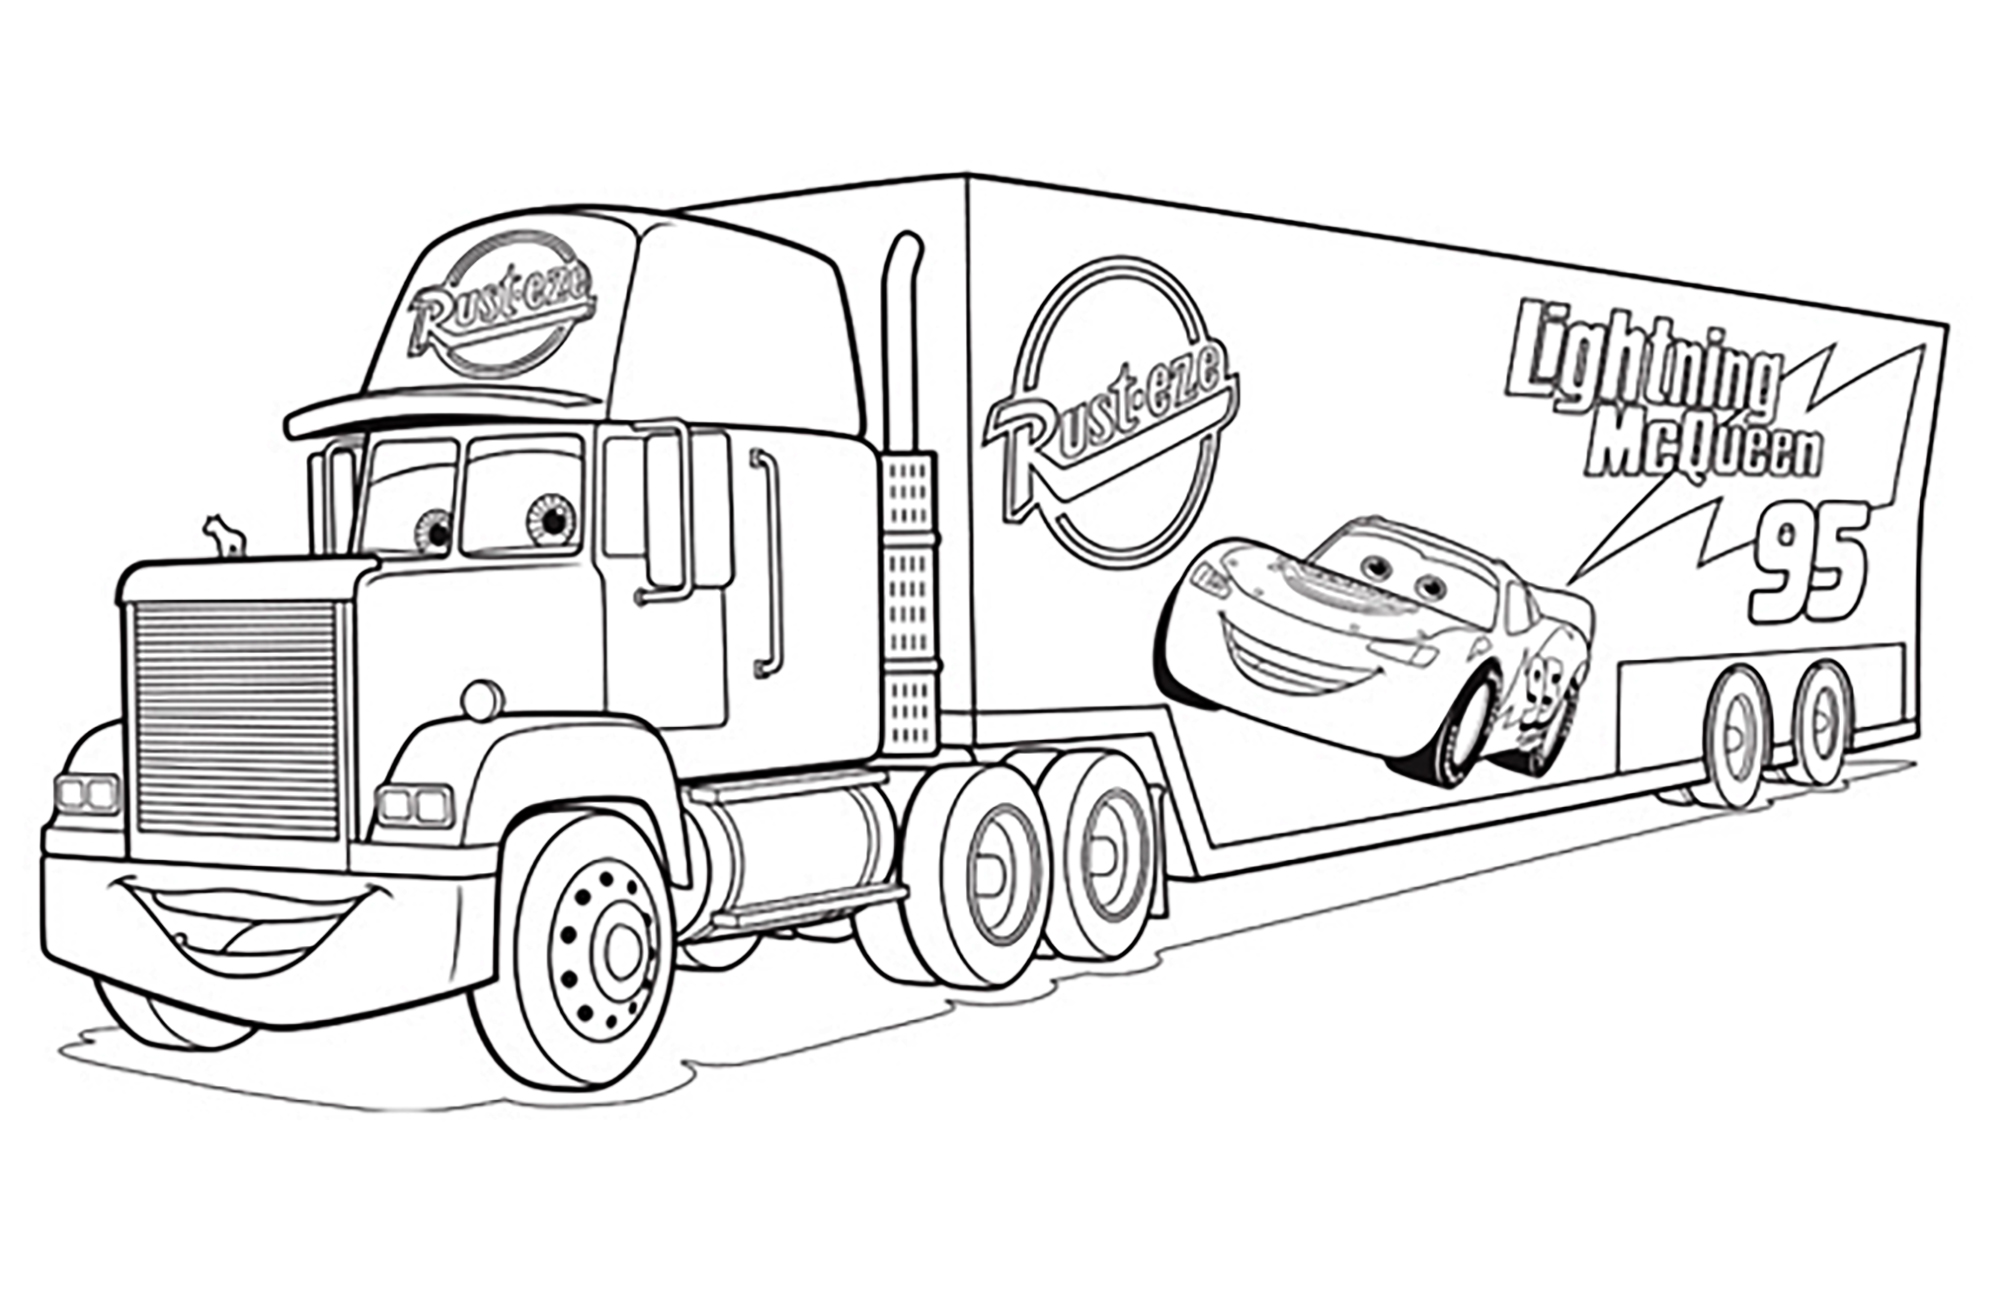 Cars 3 Lightning Mcqueen Coloring Page Cars 2 8 Coloriage Cars 2